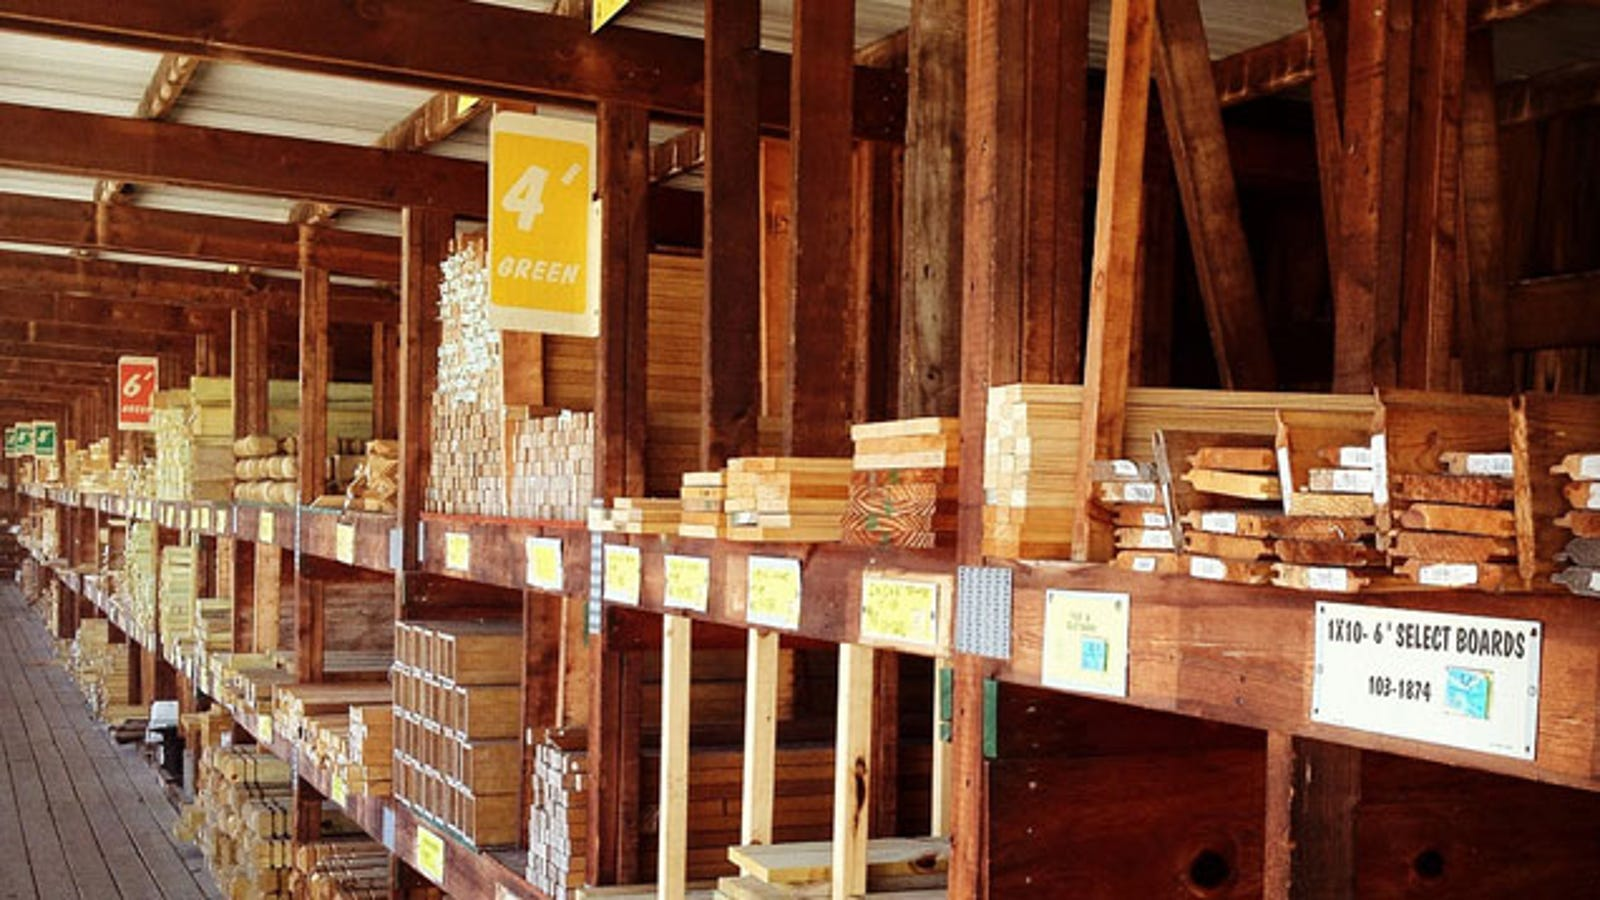 How To Save Money Buying Lumber From A Distributor Instead Of A Retailer